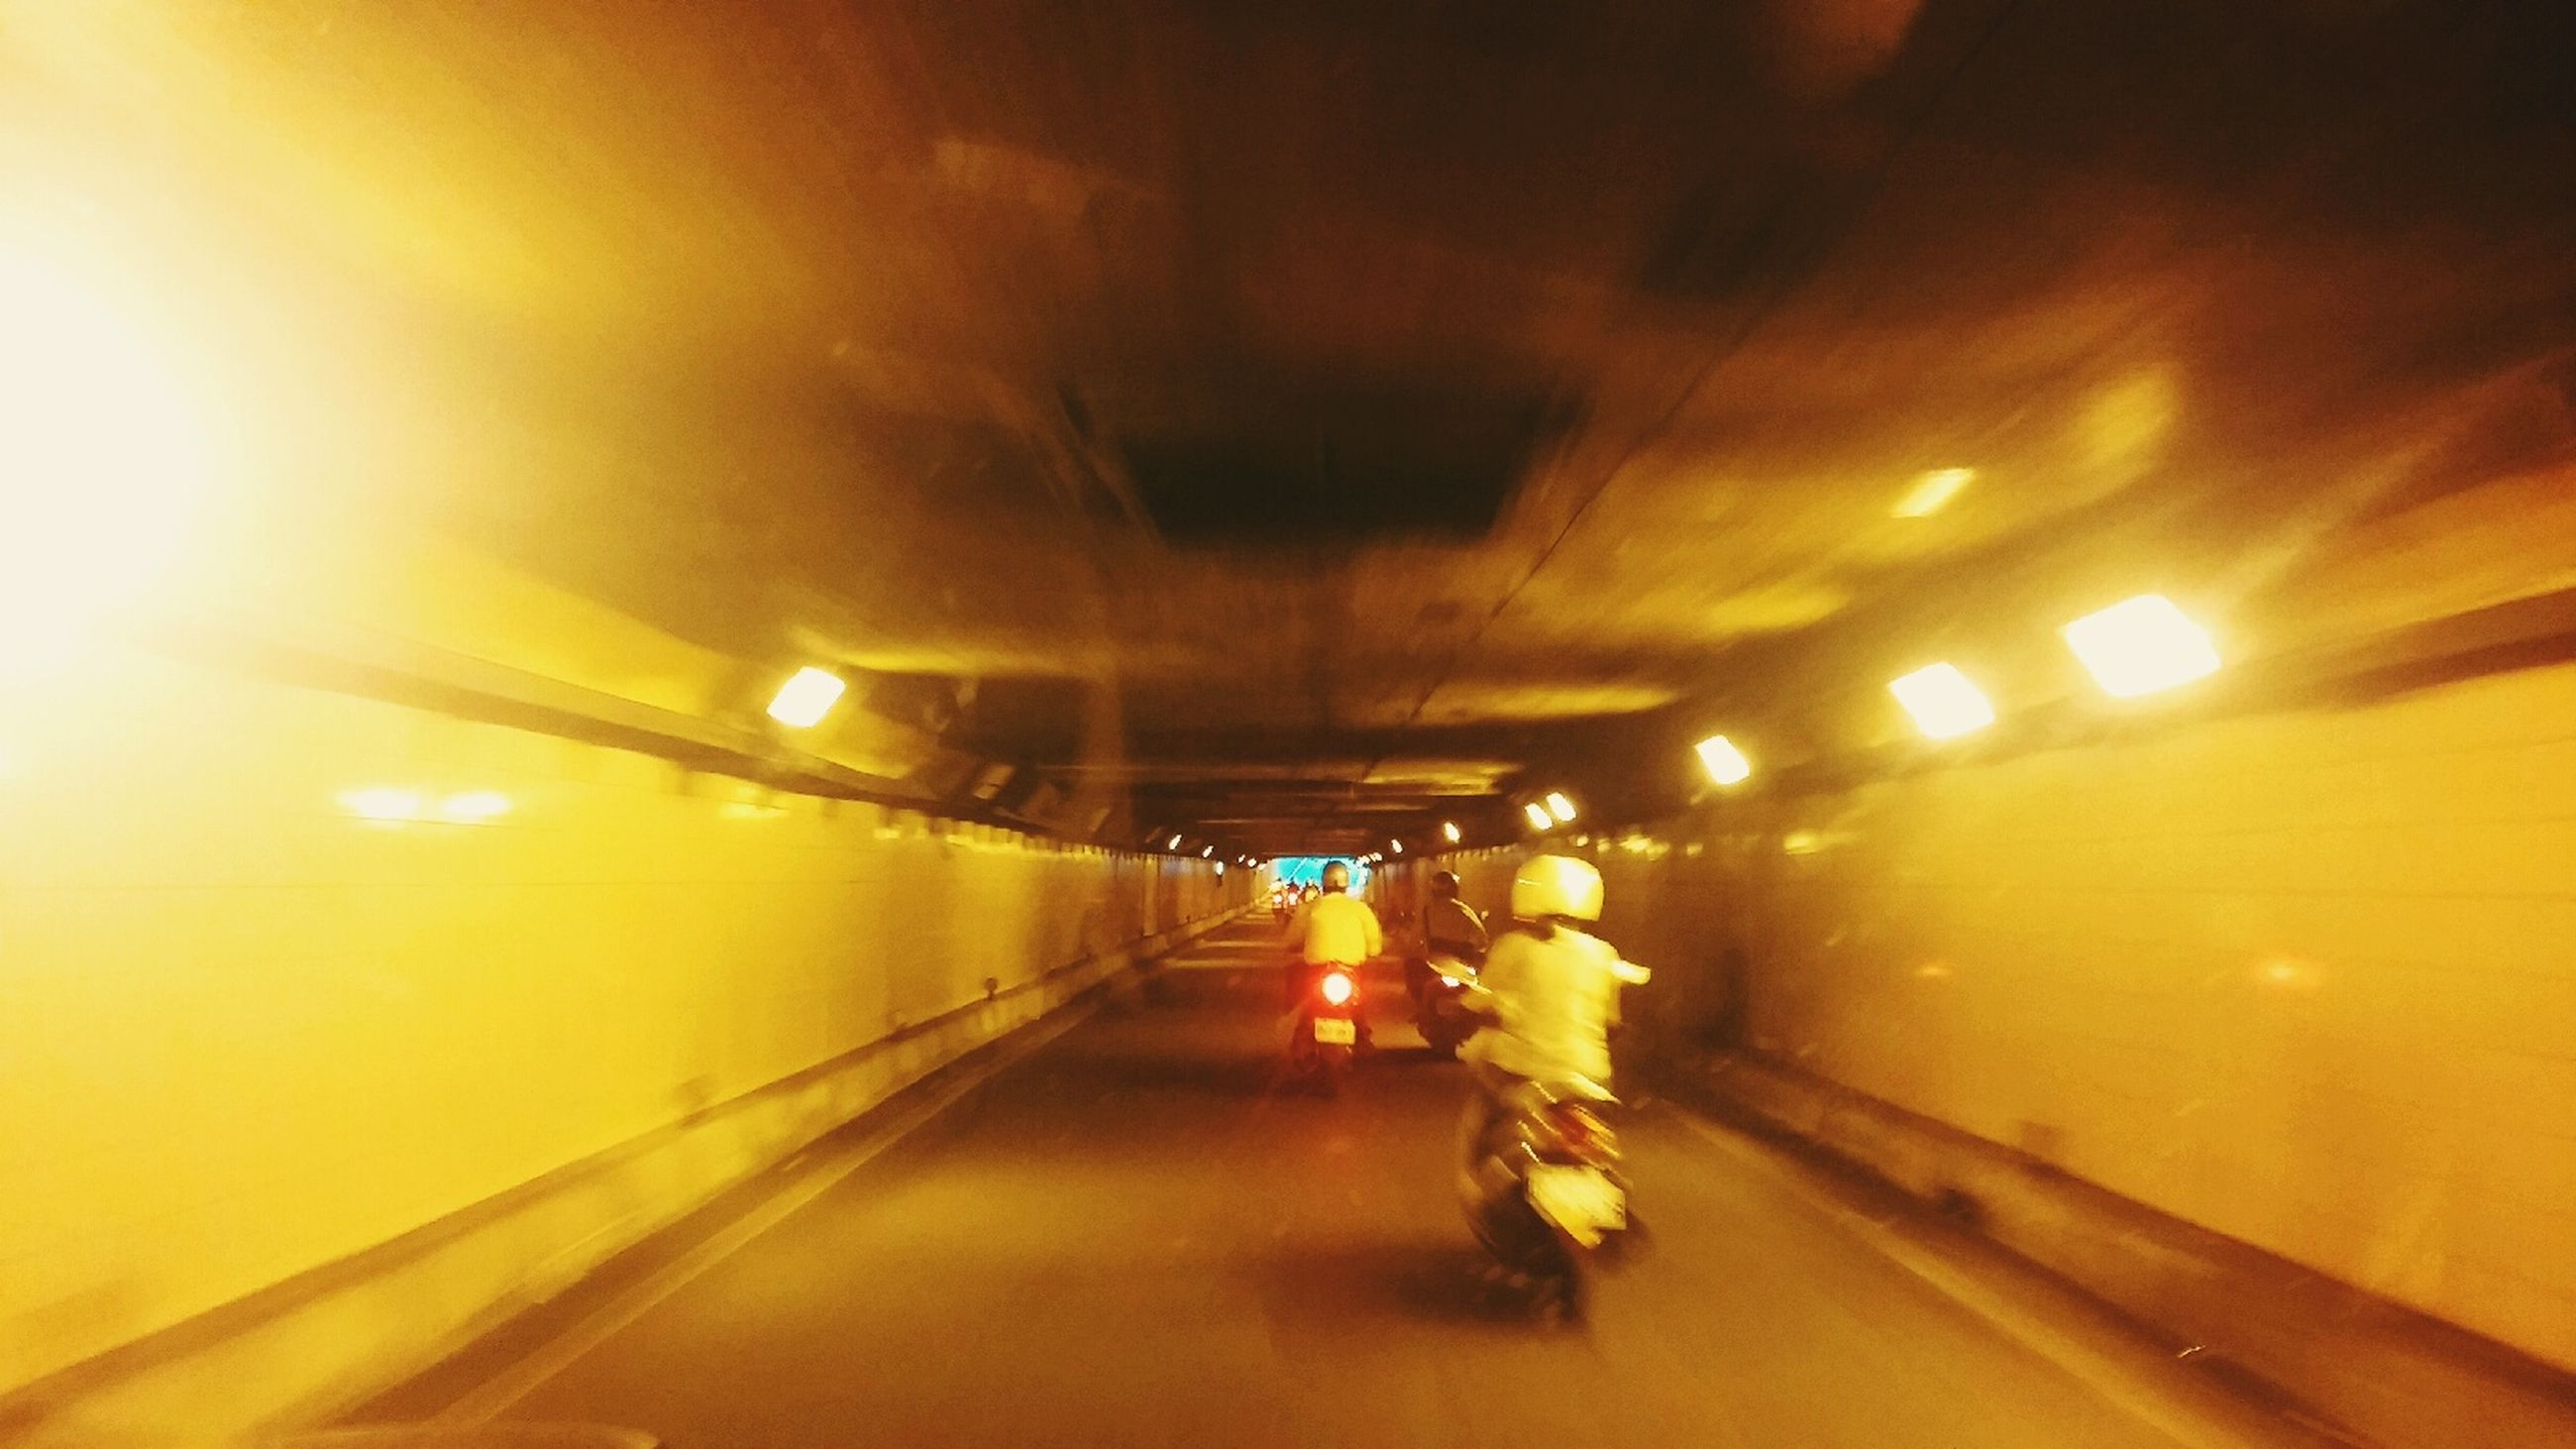 illuminated, indoors, lighting equipment, the way forward, diminishing perspective, transportation, tunnel, ceiling, vanishing point, night, electric light, light - natural phenomenon, arch, built structure, empty, architecture, road, lit, glowing, incidental people